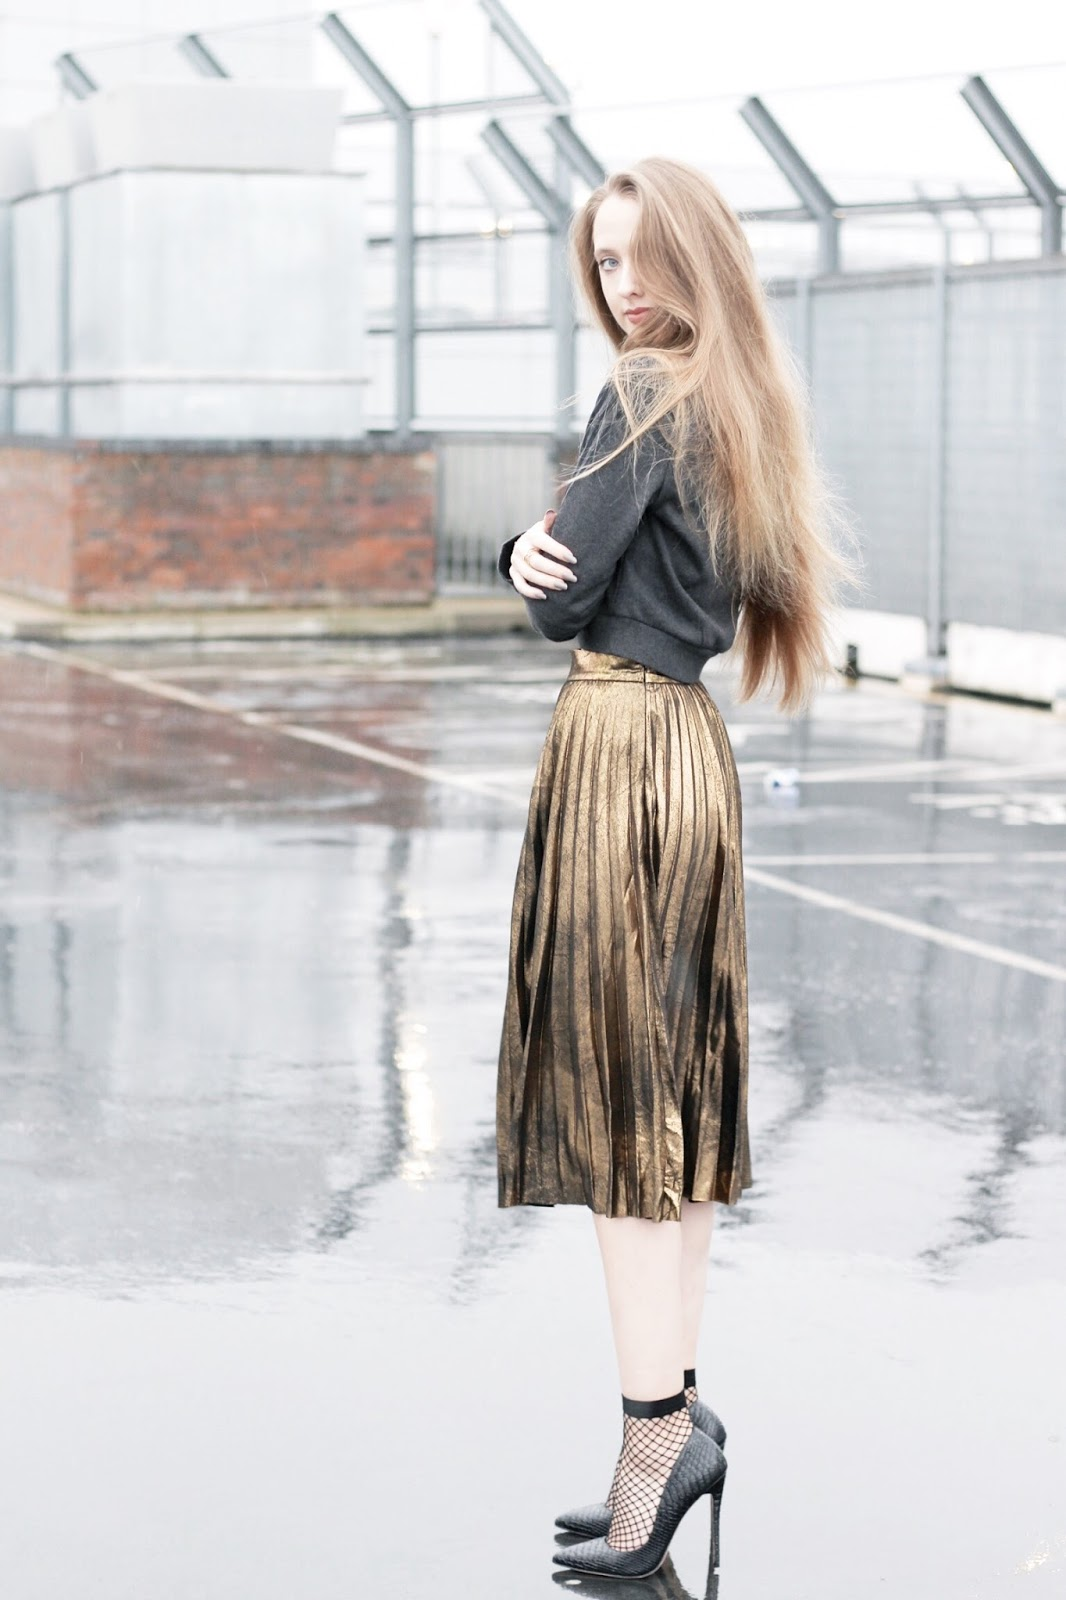 Styling a gold pleated midi skirt in winter